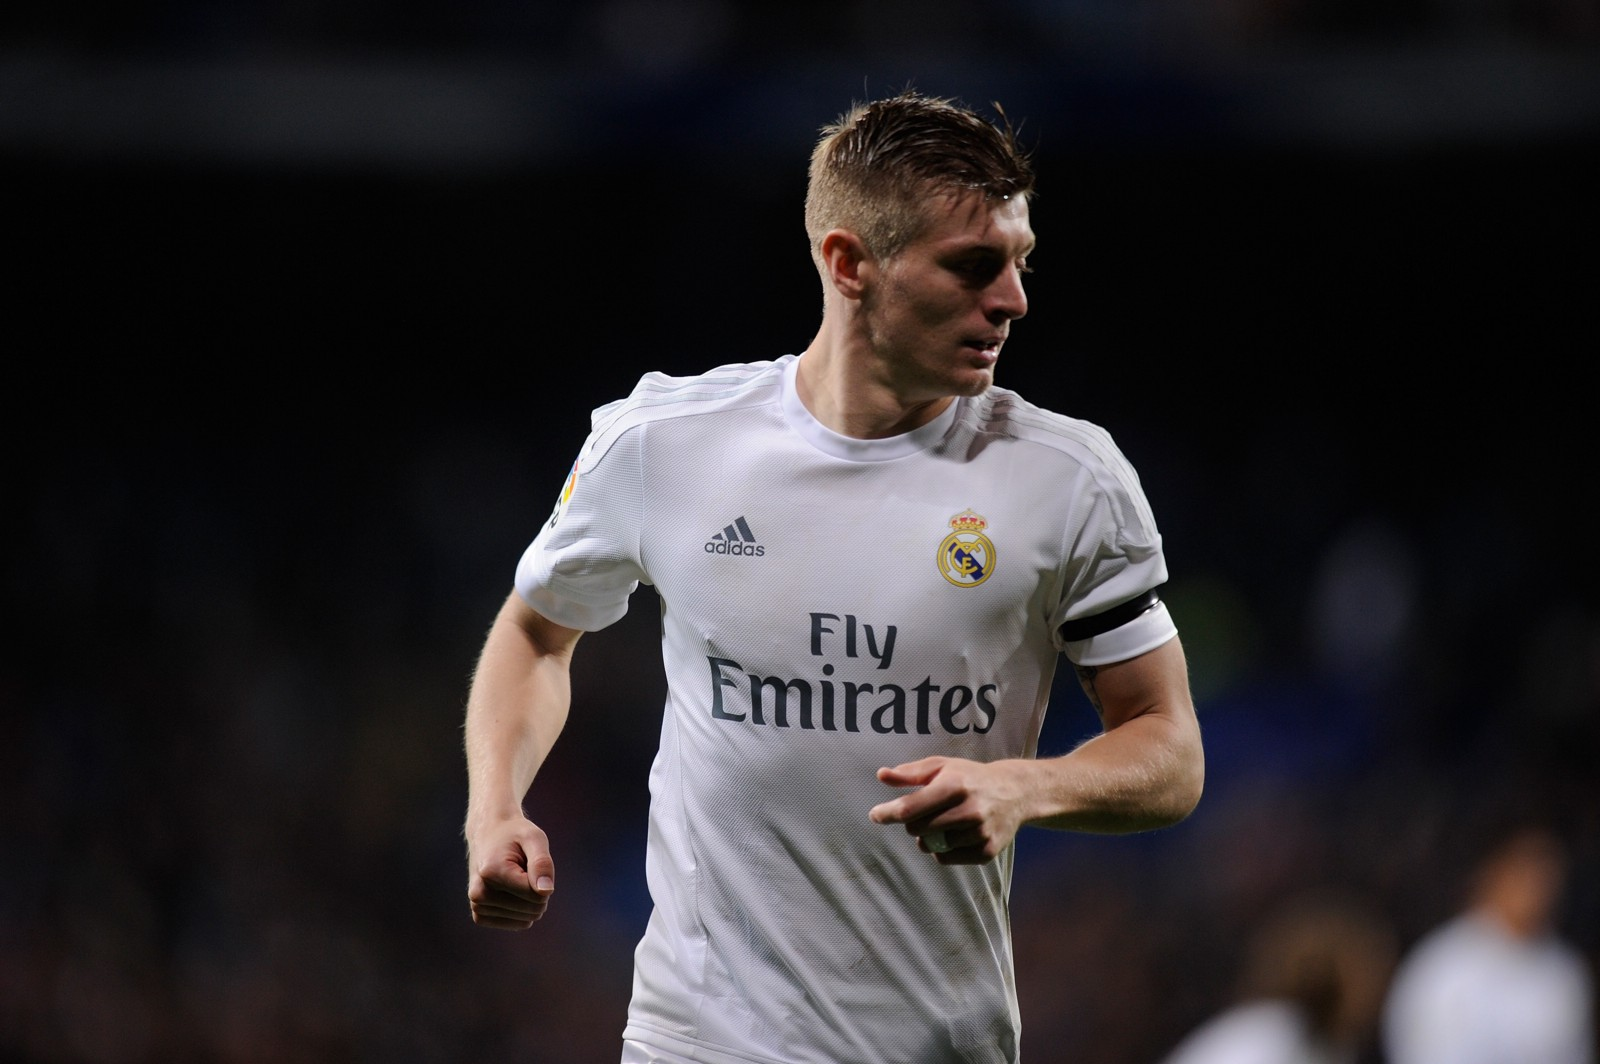 Toni Kroos Is Peaking At Just The Right Time – KiyanSobhani